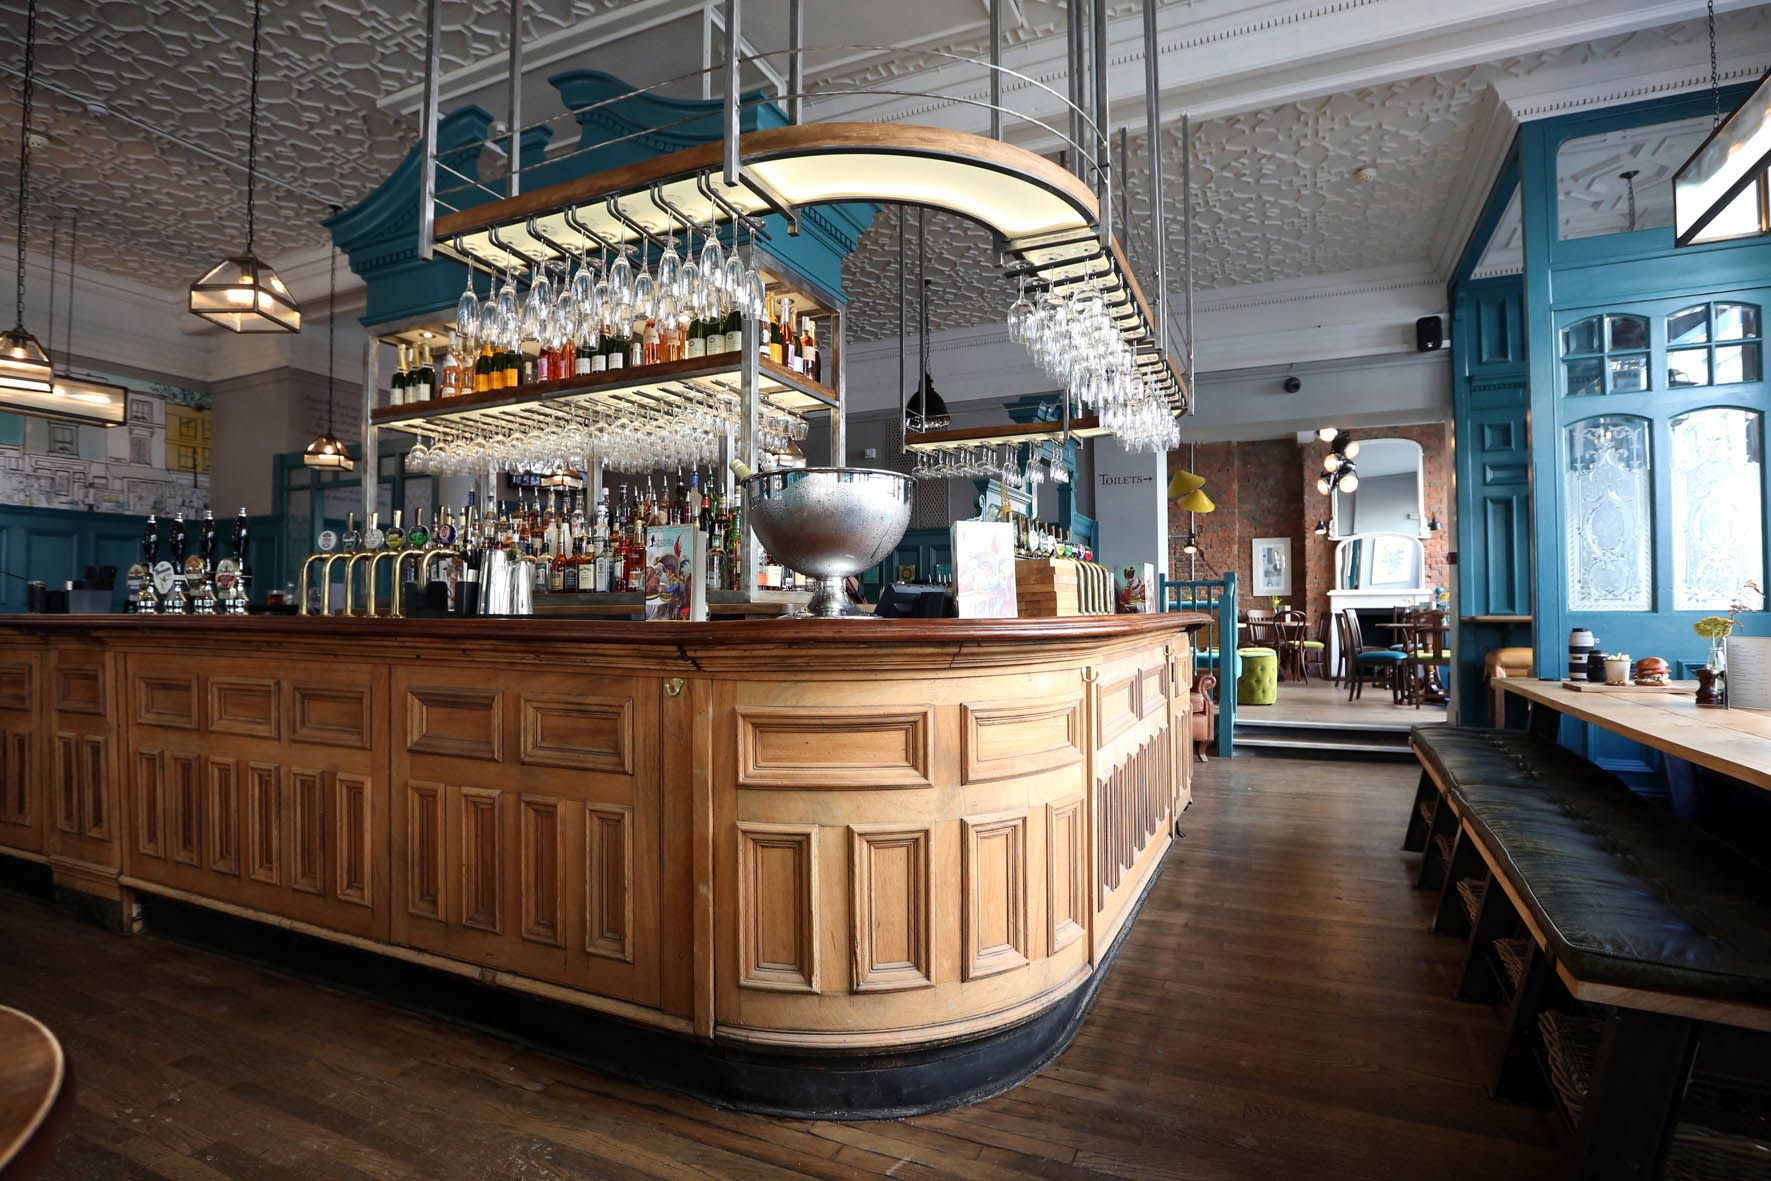 The Duke Of Wellington London Interior Design By My Old Friend Pb Of Fusion By Design Leeds West Yorkshire Design Bar Photos